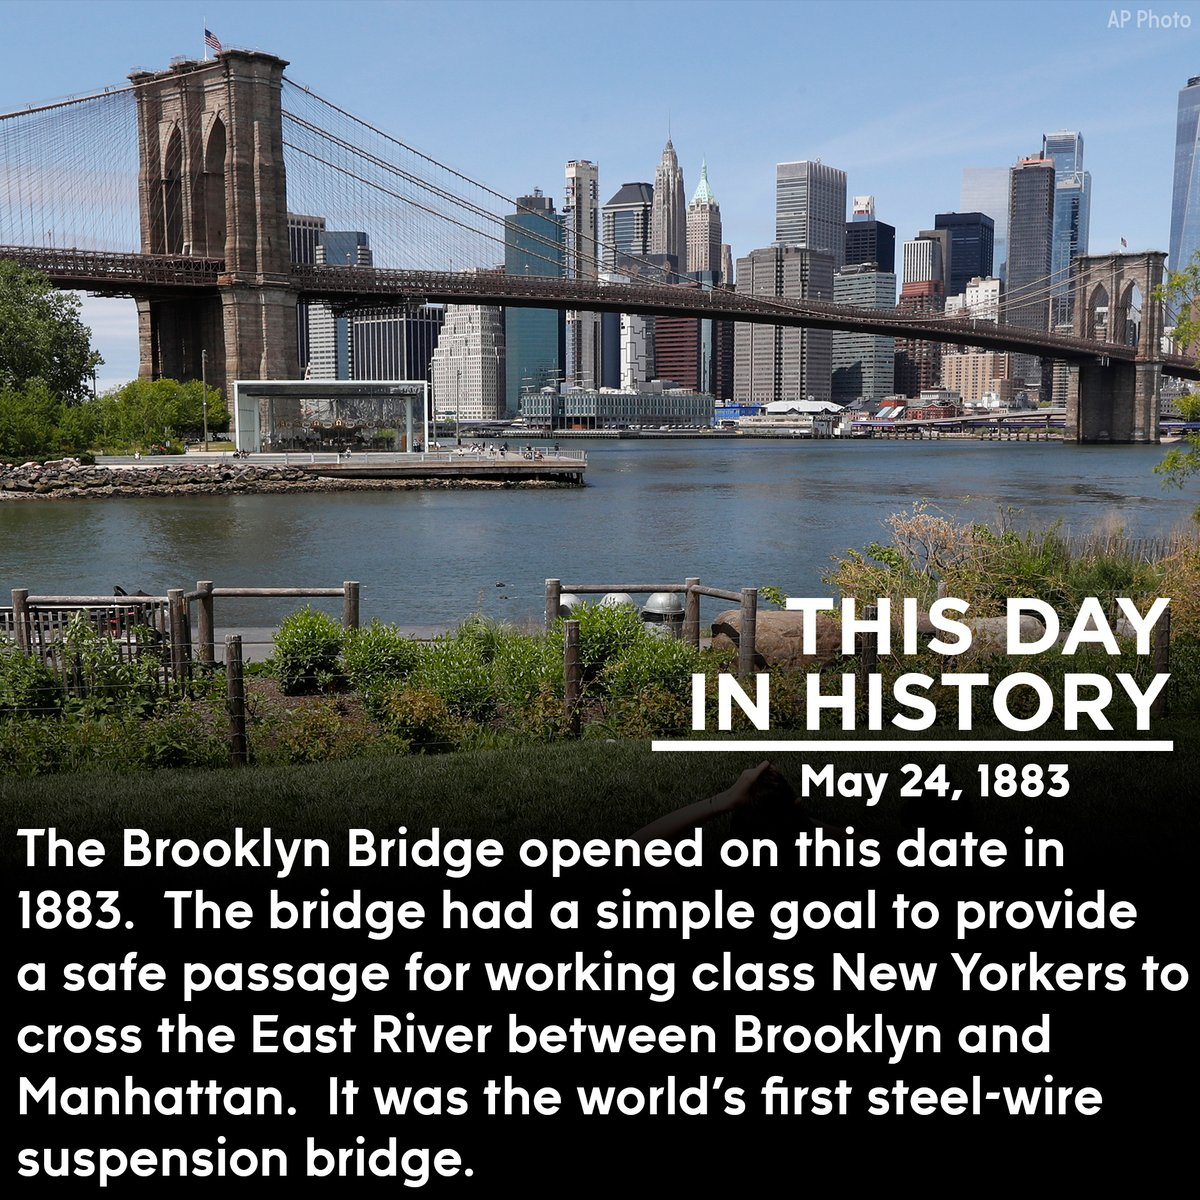 Happy birthday, Brooklyn Bridge!  It was the world's longest suspension bridge on the day it opened, spanning the East River and providing the link between Manhattan and Brooklyn.  #brooklynbridge #nycpic.twitter.com/Ed8Gkh4ldb